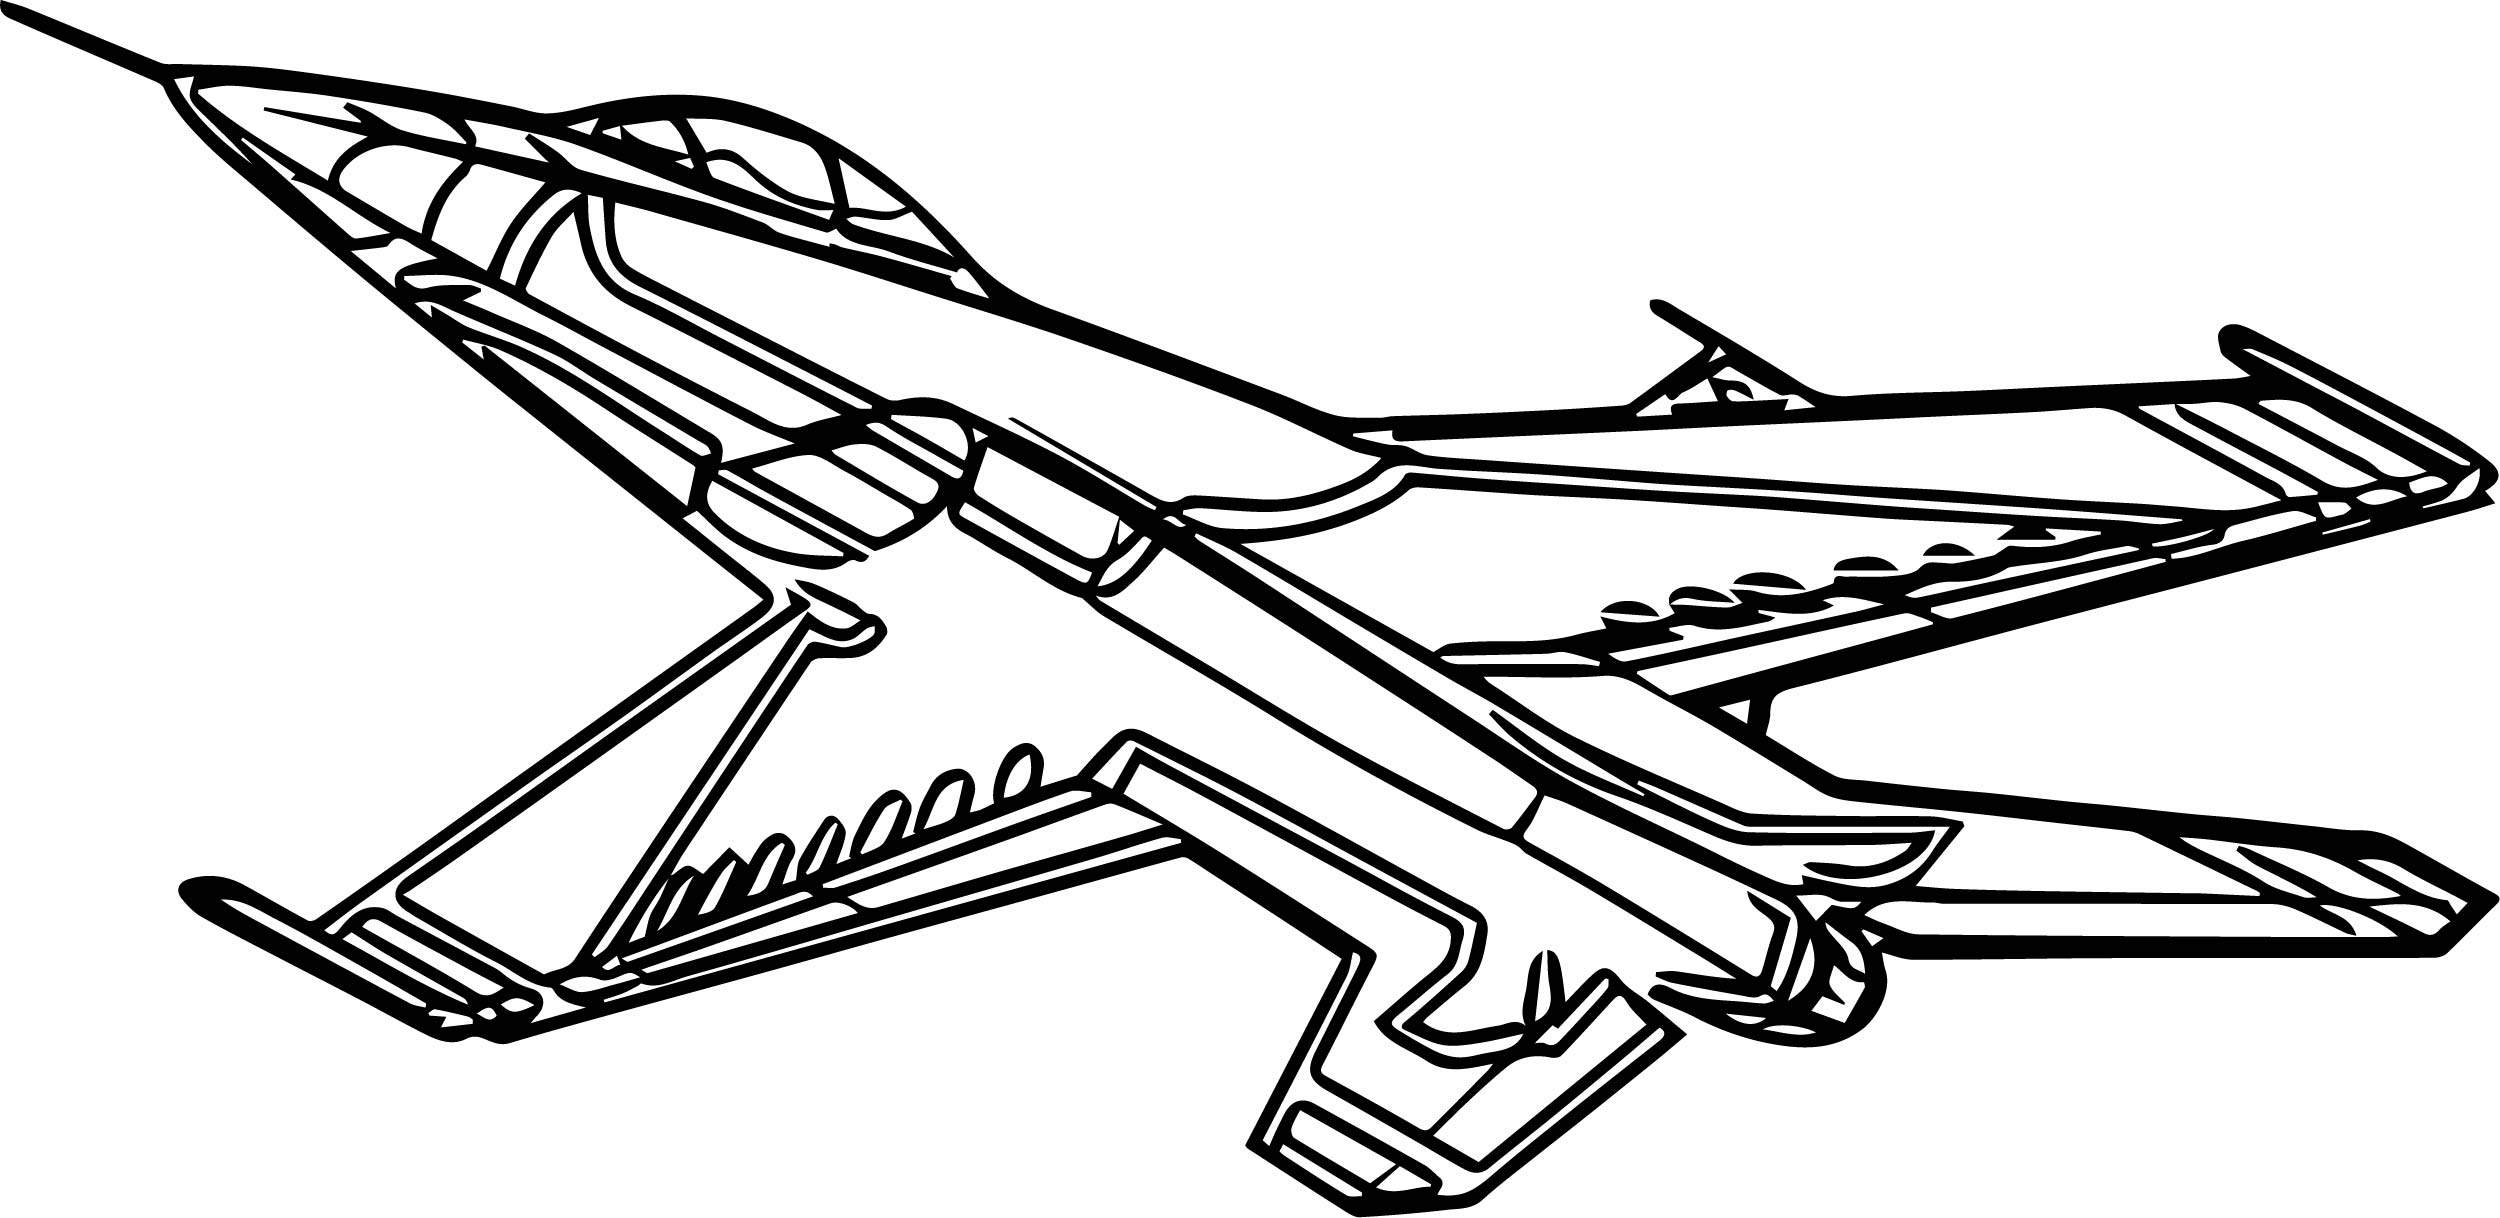 Airplane Outline Drawing at GetDrawings | Free download